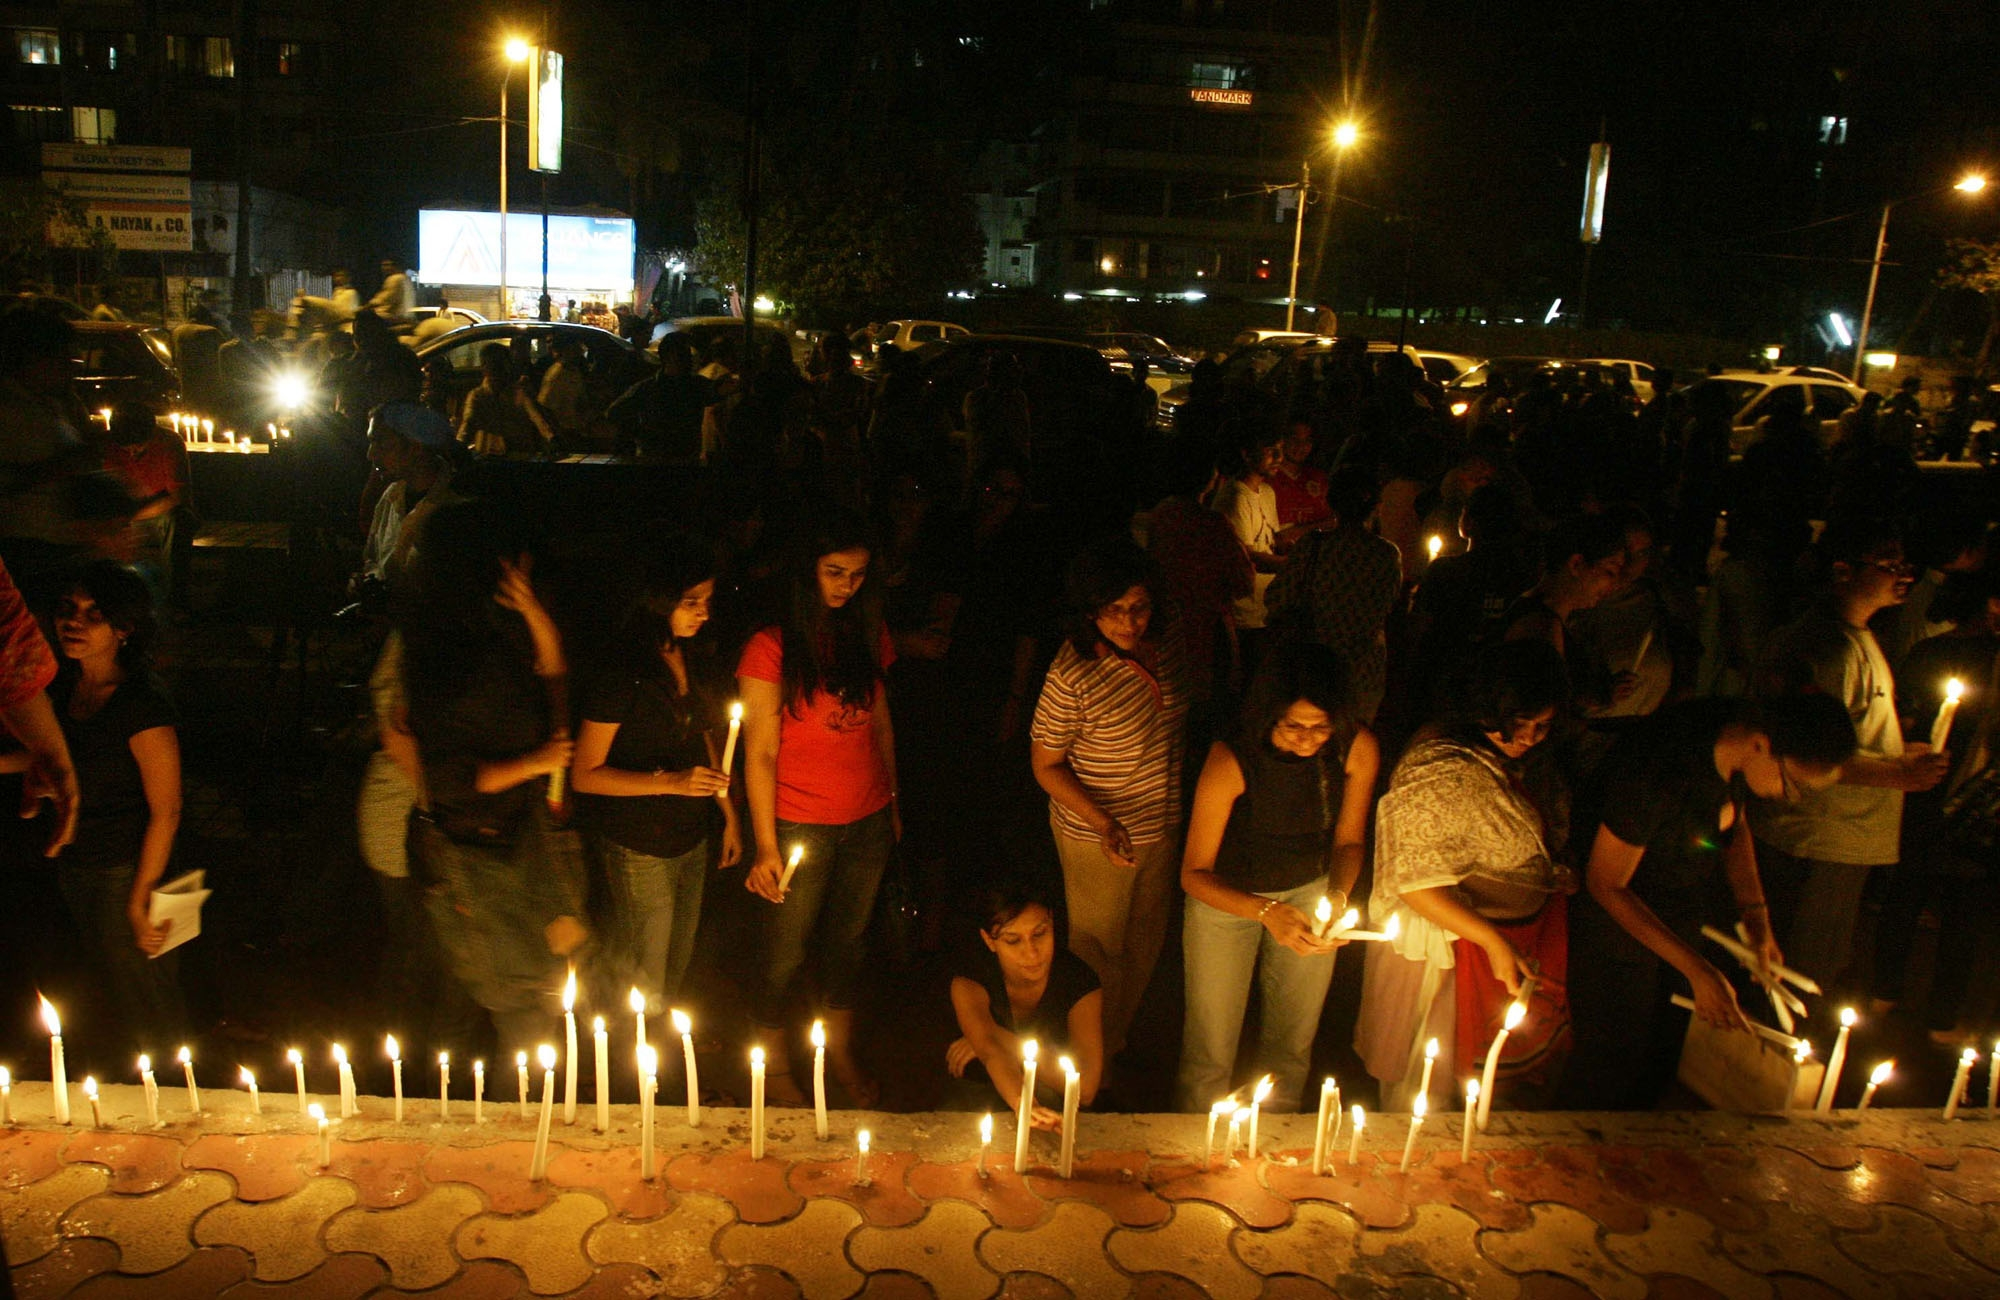 FILE - Members of the public observe a candlelight vigil for the victims of terrorist attacks in which scores were killed, in Mumbai, India, Nov. 29, 2008.